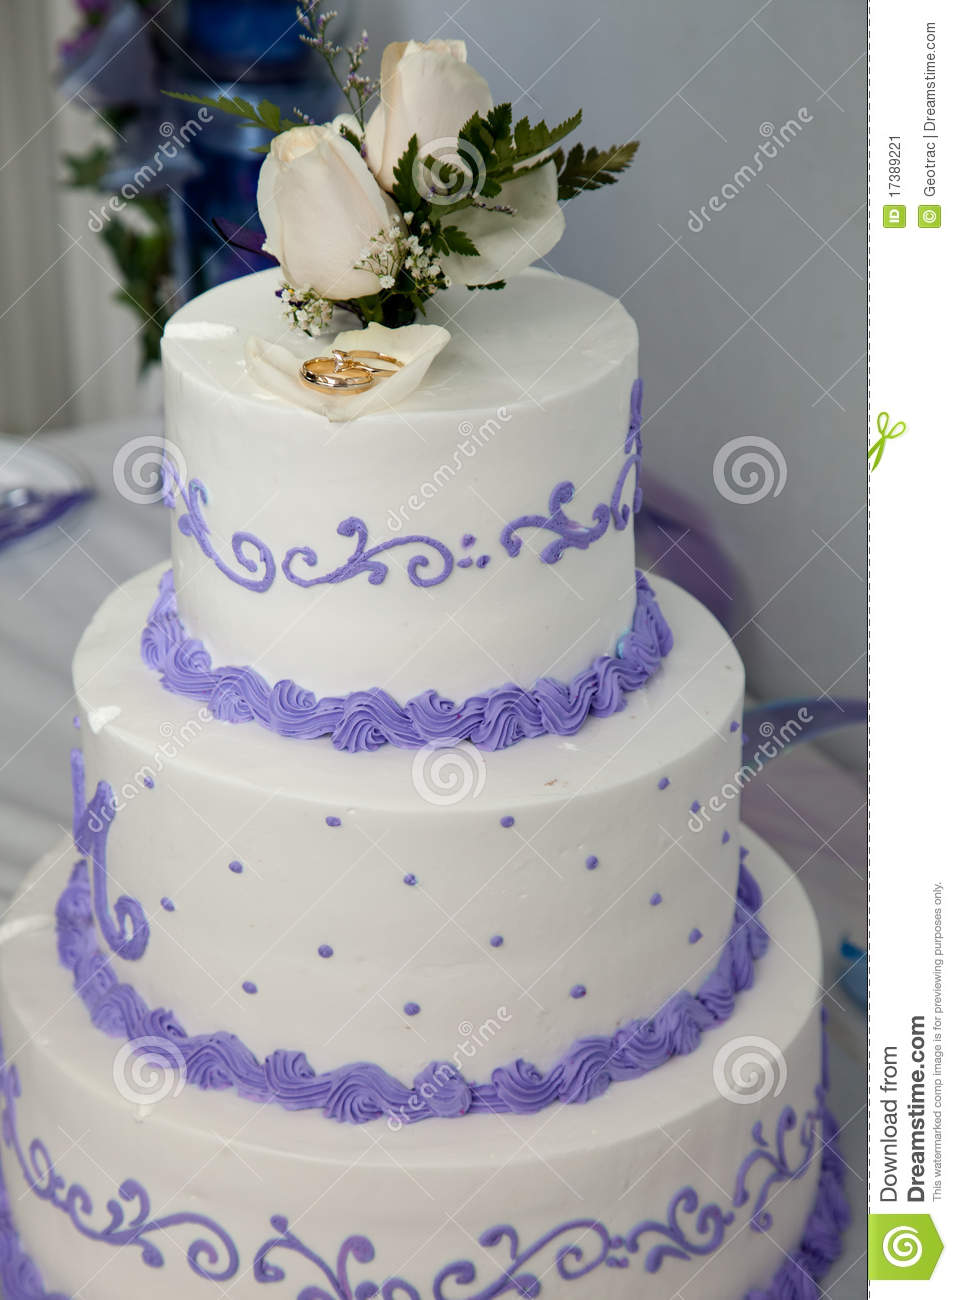 Wedding Cake And Topper With Wedding Rings Stock Image - Image of ...